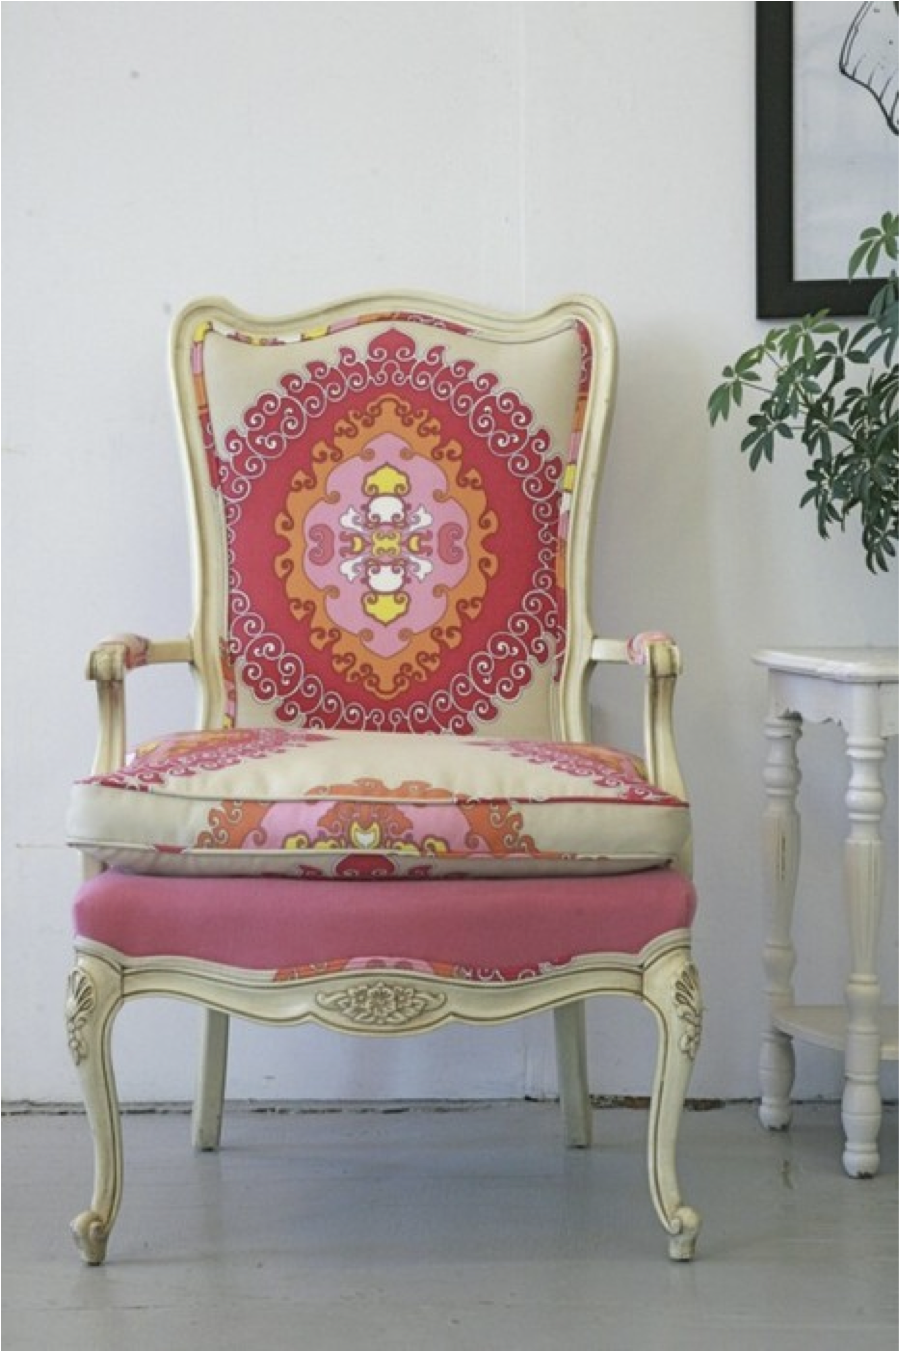 Reupholstered antique chair DIY